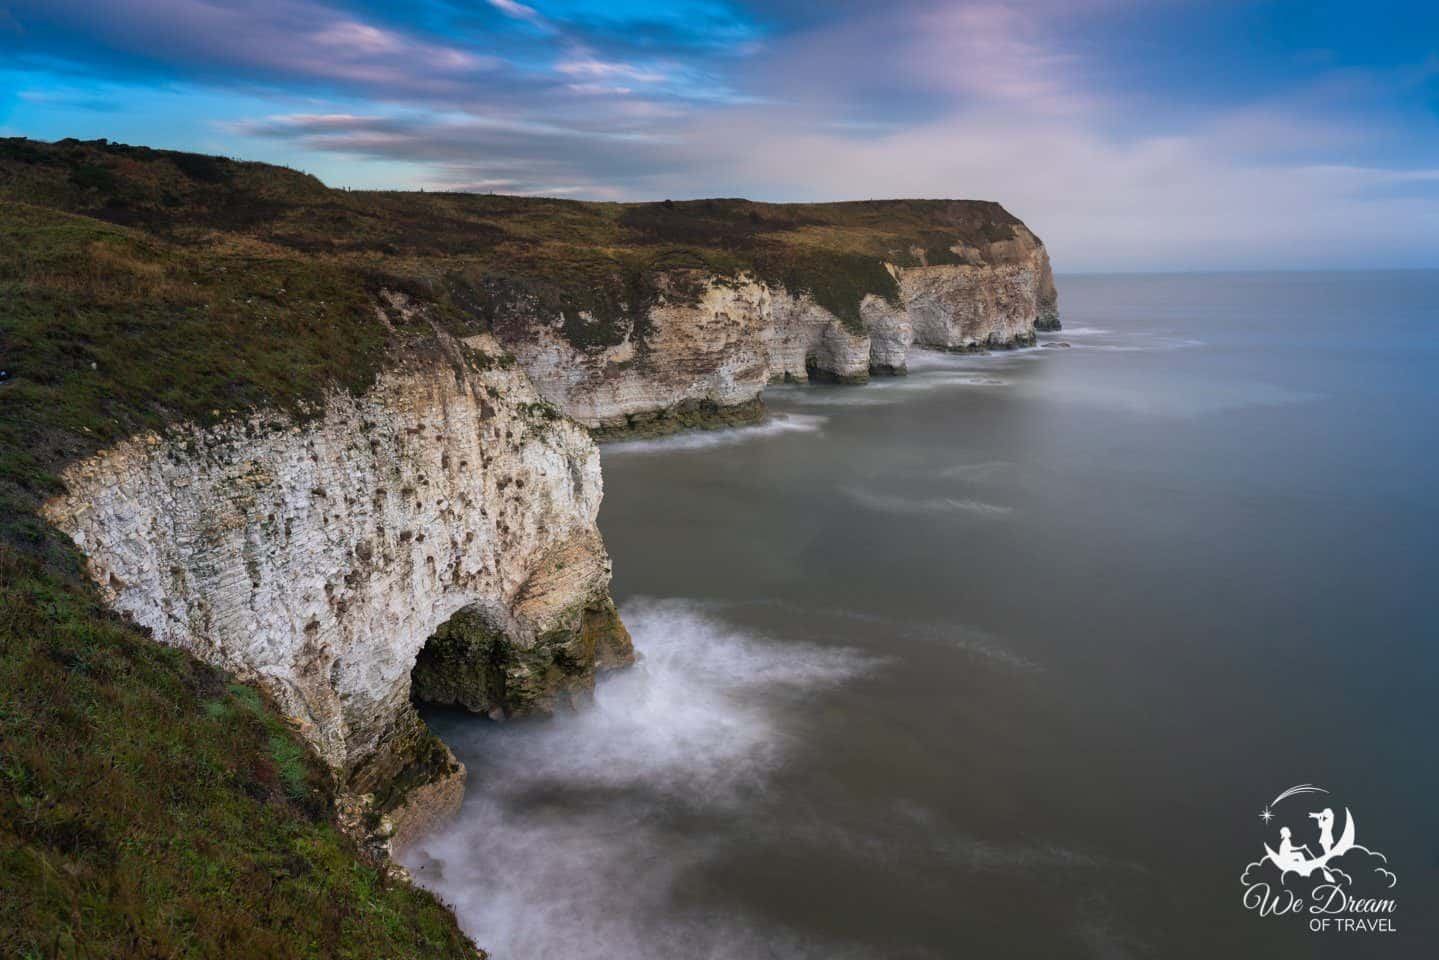 Long exposure photography of the Flamborough Head Cliffs